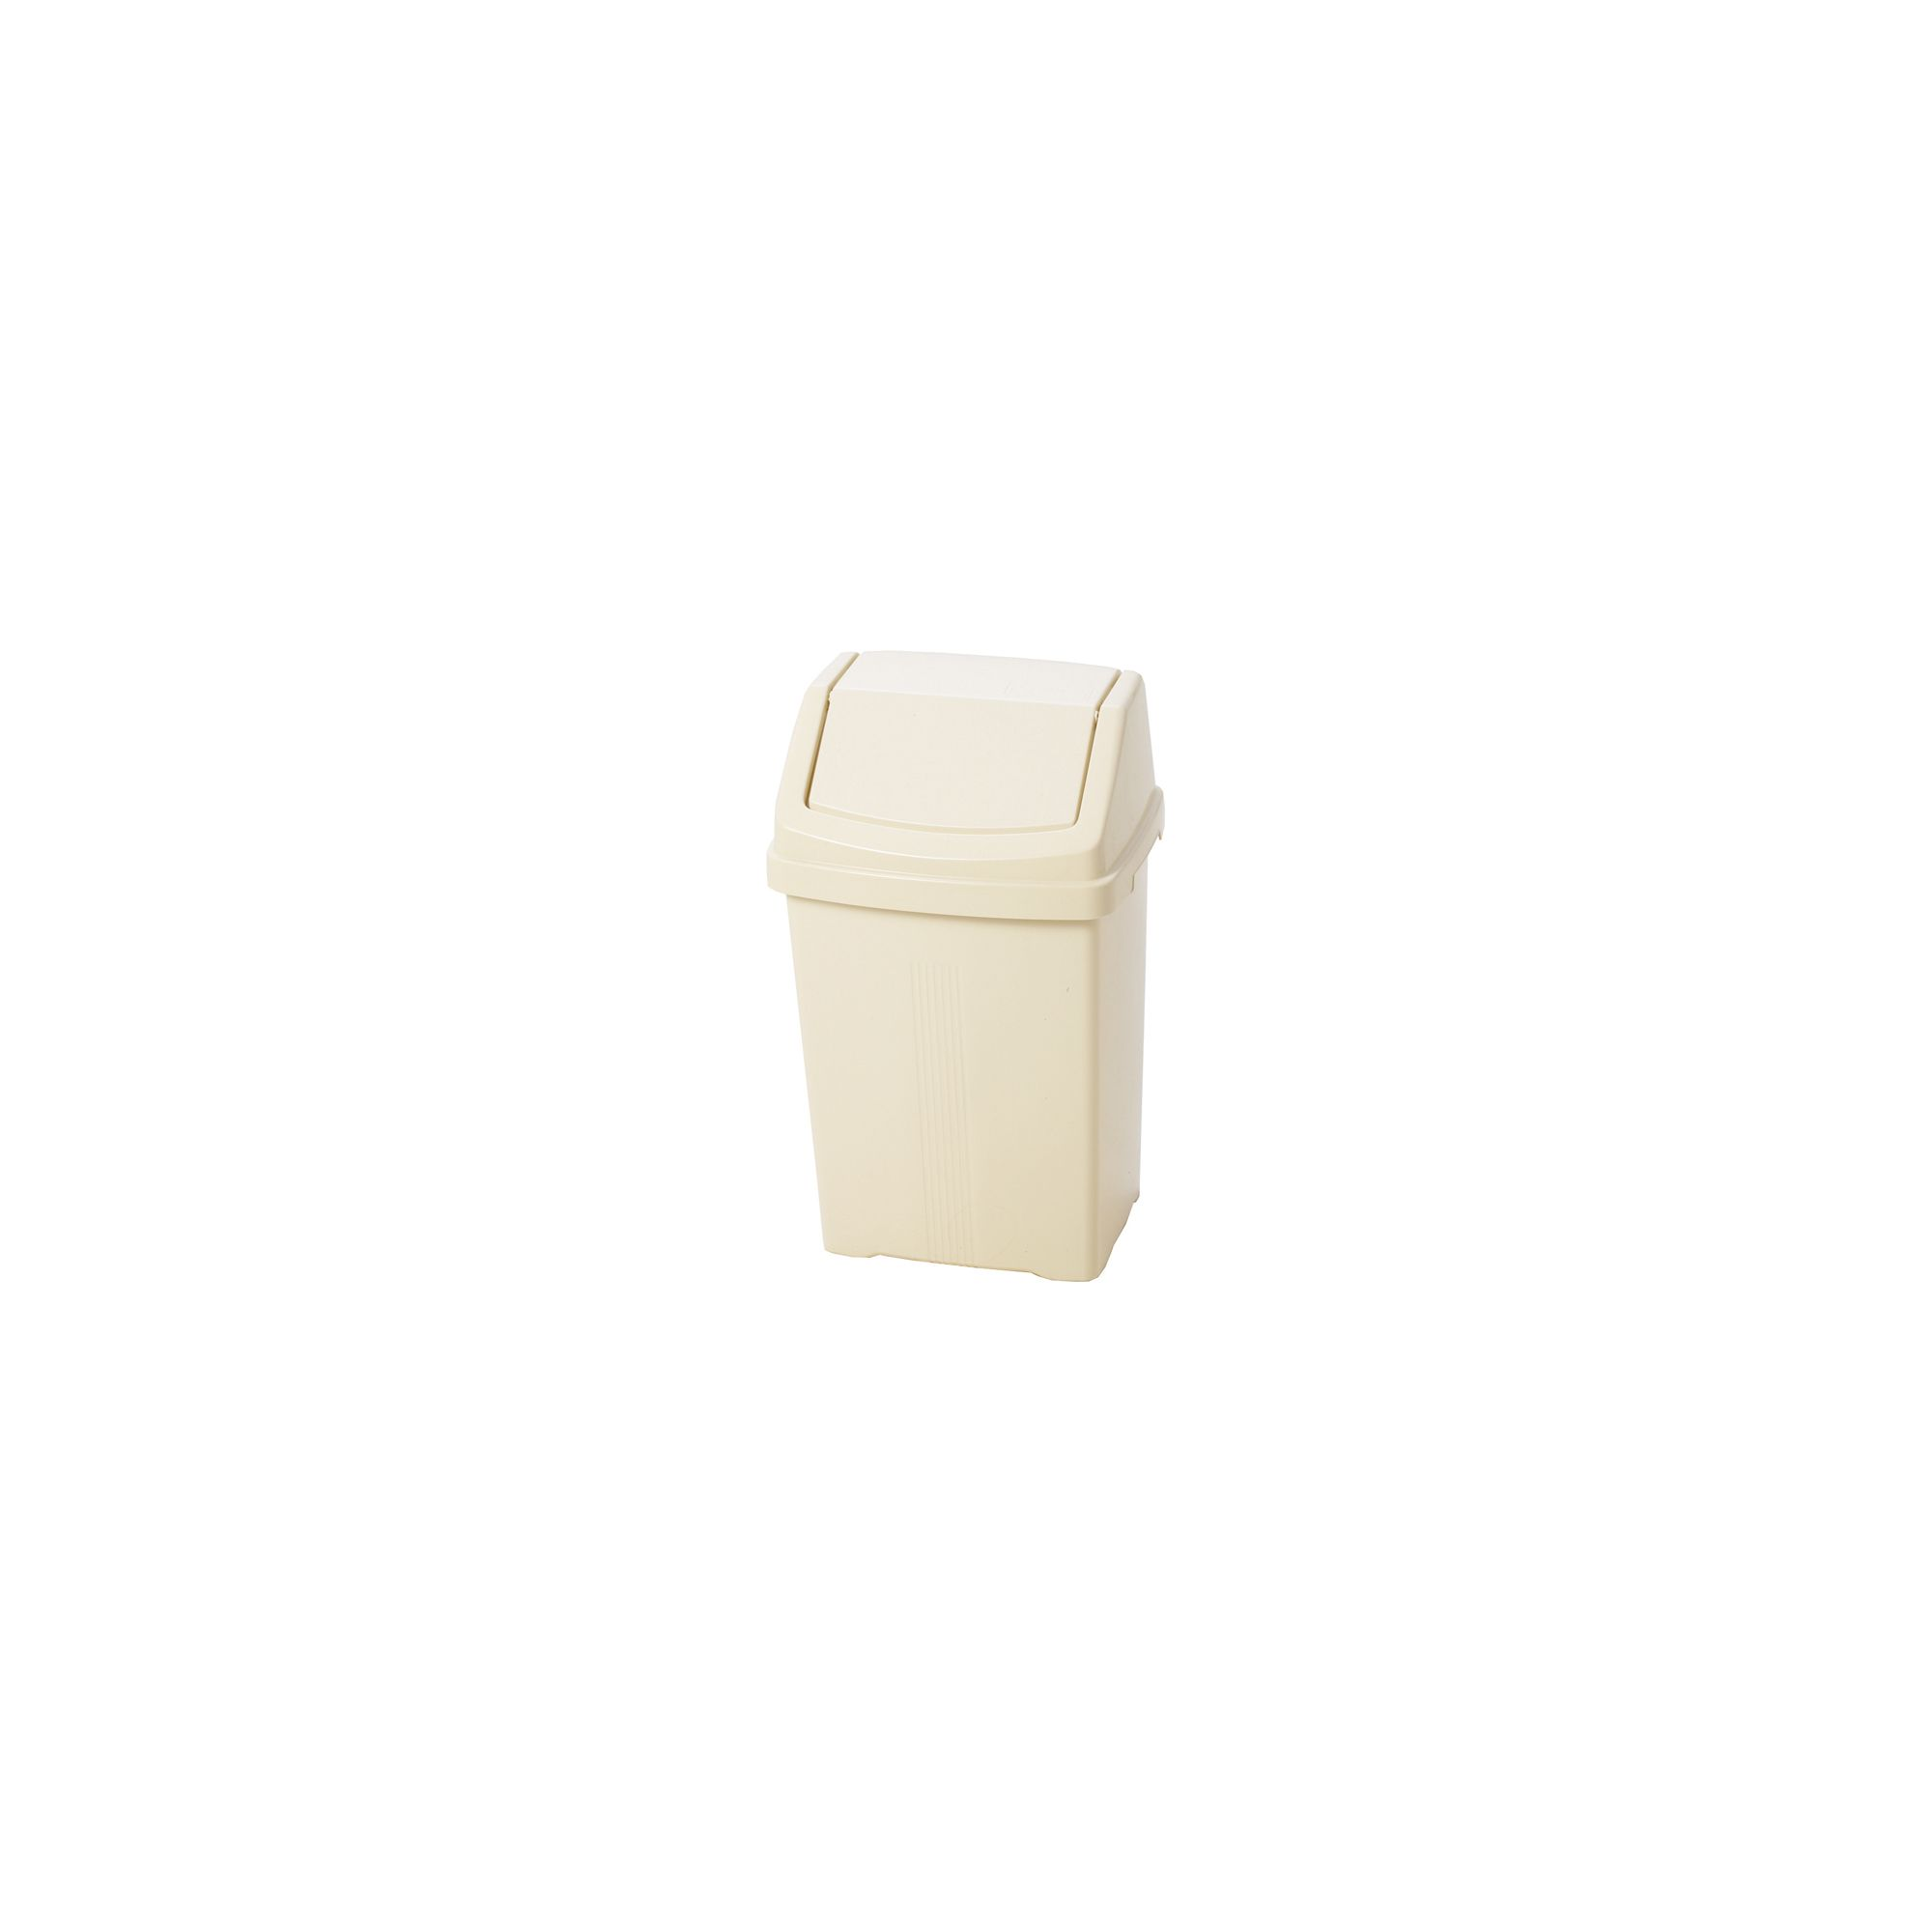 Whatmore 11930 Swing Bin Calico 15l